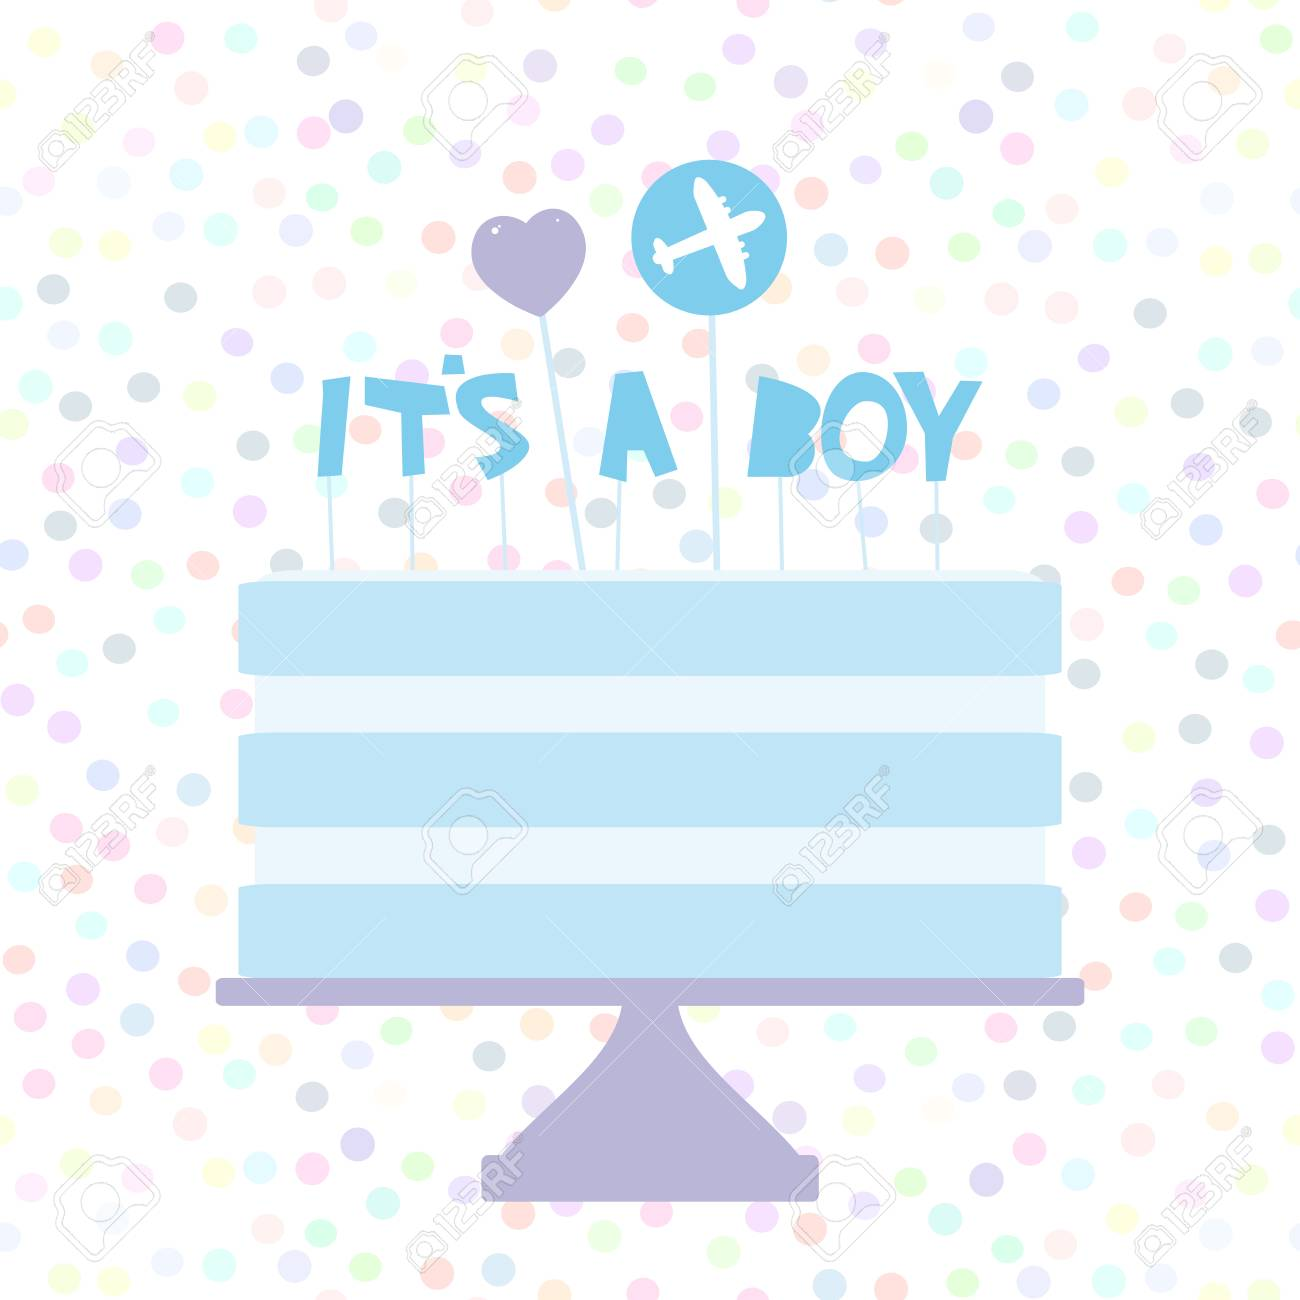 its a boy sweet blue cake blue cream heart plane baby shower